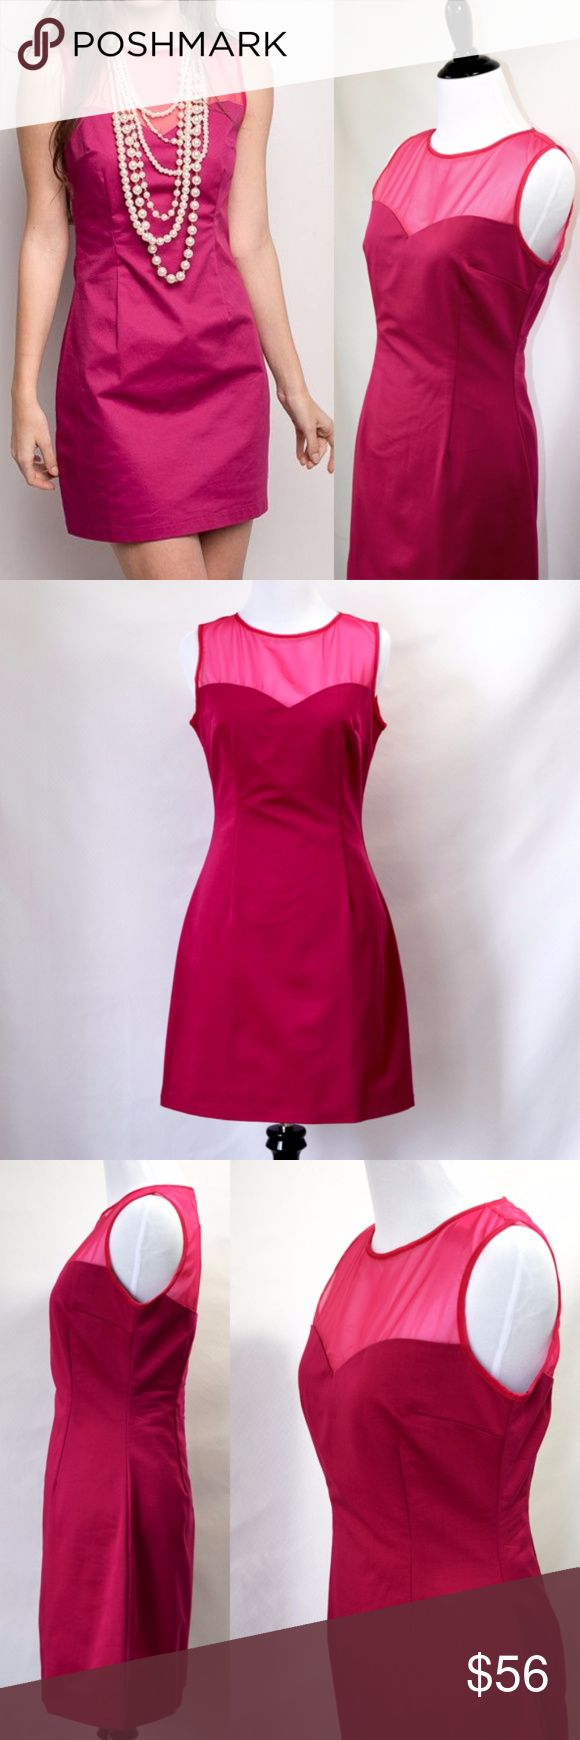 NWT Pink Martini Pink Mini Dress New with tag Pink Martini Its pink hue is bold without being Pepto Bismol-bright.  The great thing about this style is that it works for any season  Mini dress Sheer mesh top Zipper back 100% polyester  Hand wash cold Size xs Pink Martini Dresses Mini